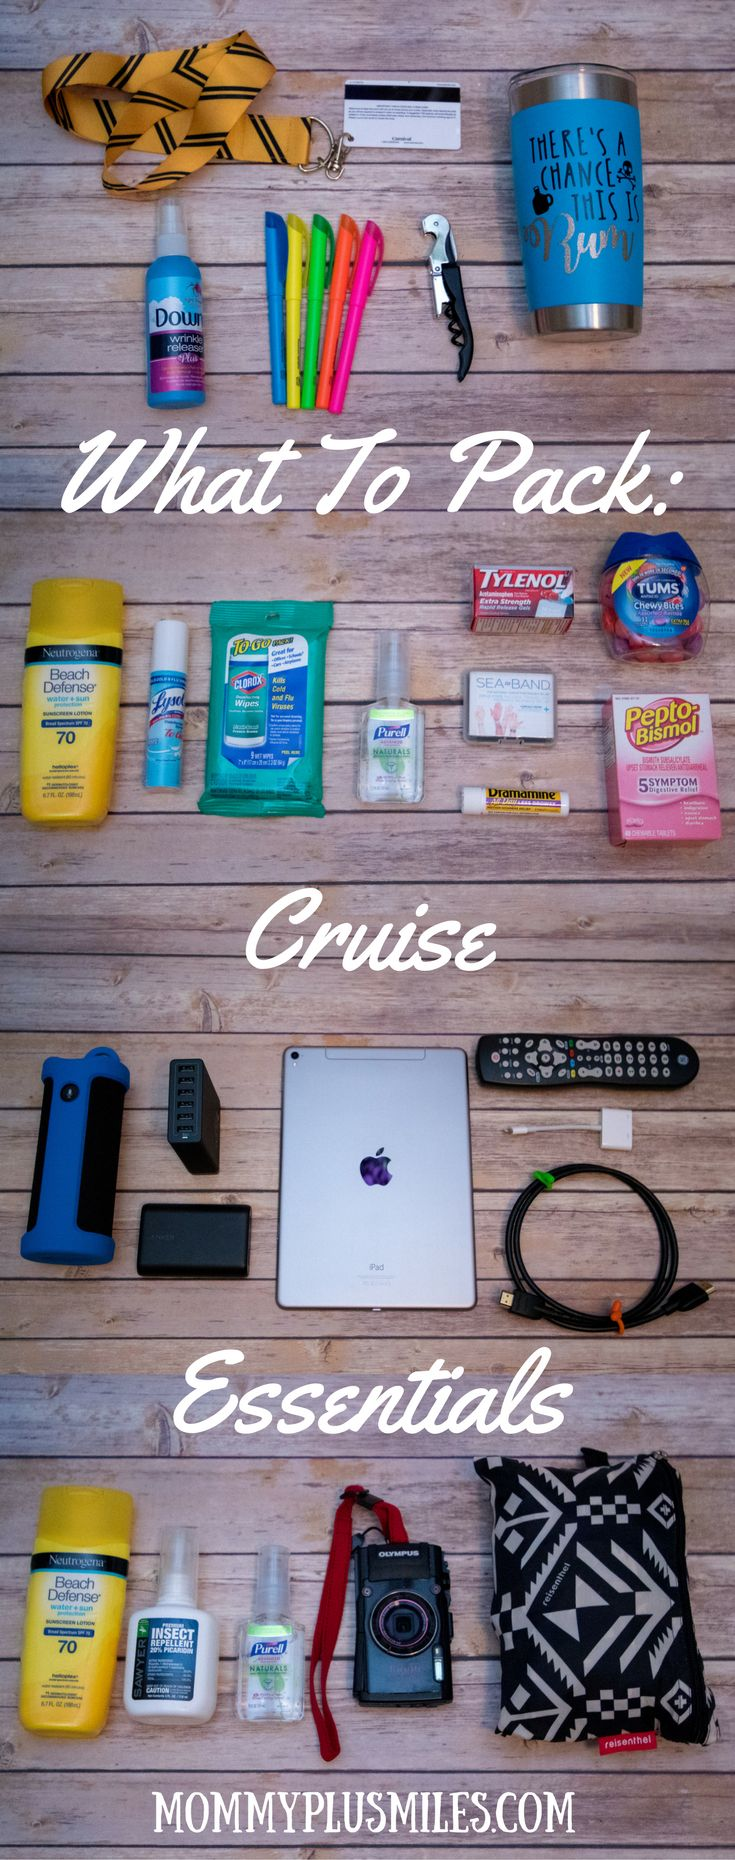 What to Pack: Cruise Essentials including ship, healthcare, entertainment, and excursion essentials.